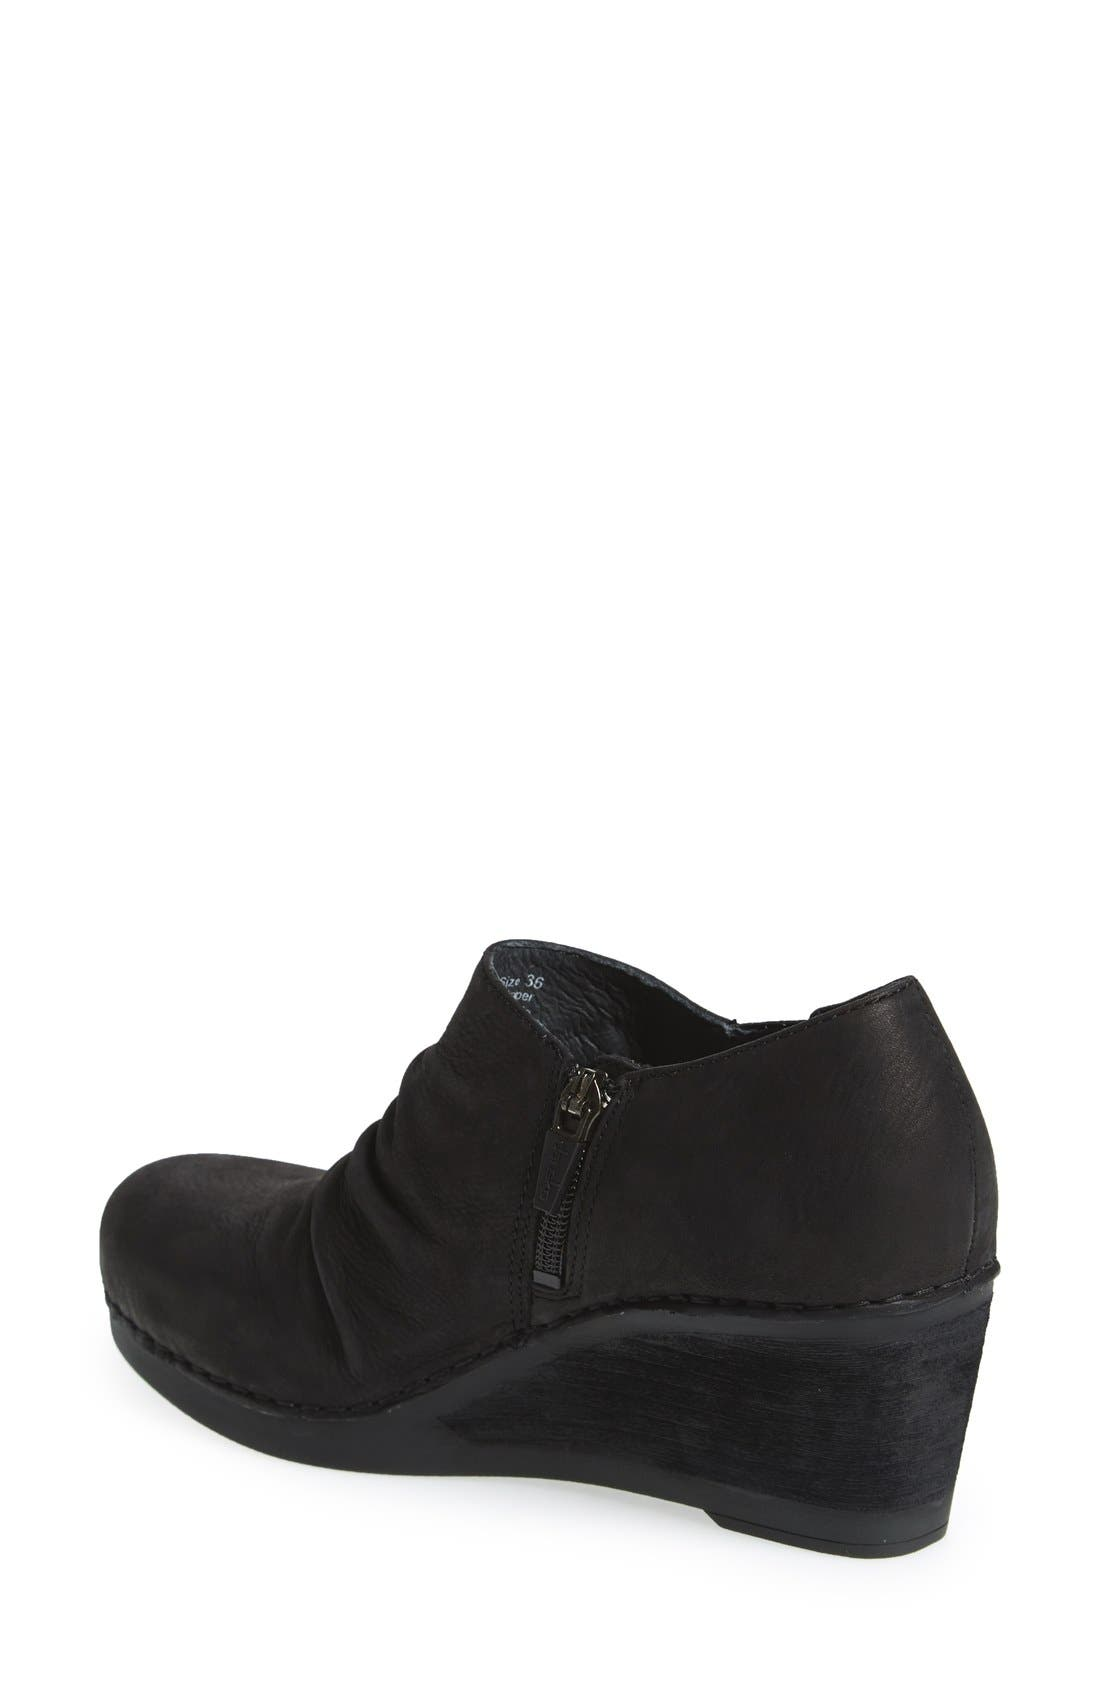 'Sheena' Slouchy Wedge Bootie,                             Alternate thumbnail 2, color,                             001